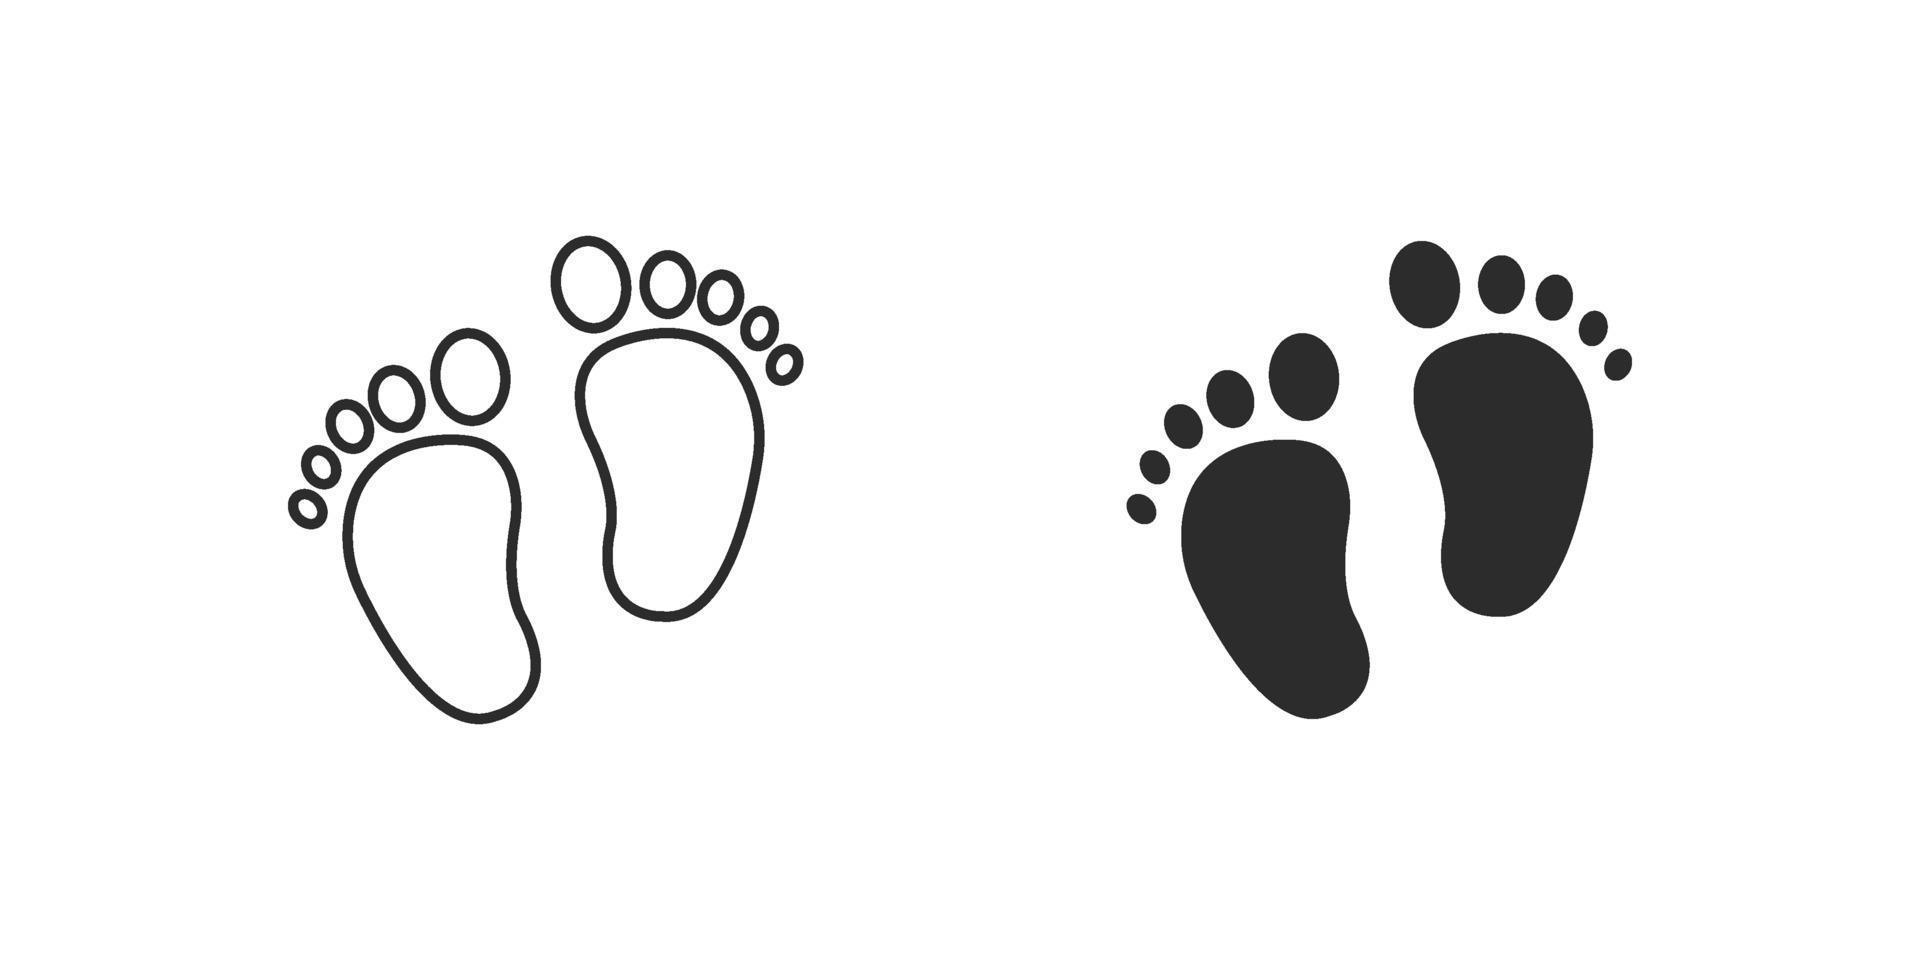 baby feet icon flat style isolated on white background vector